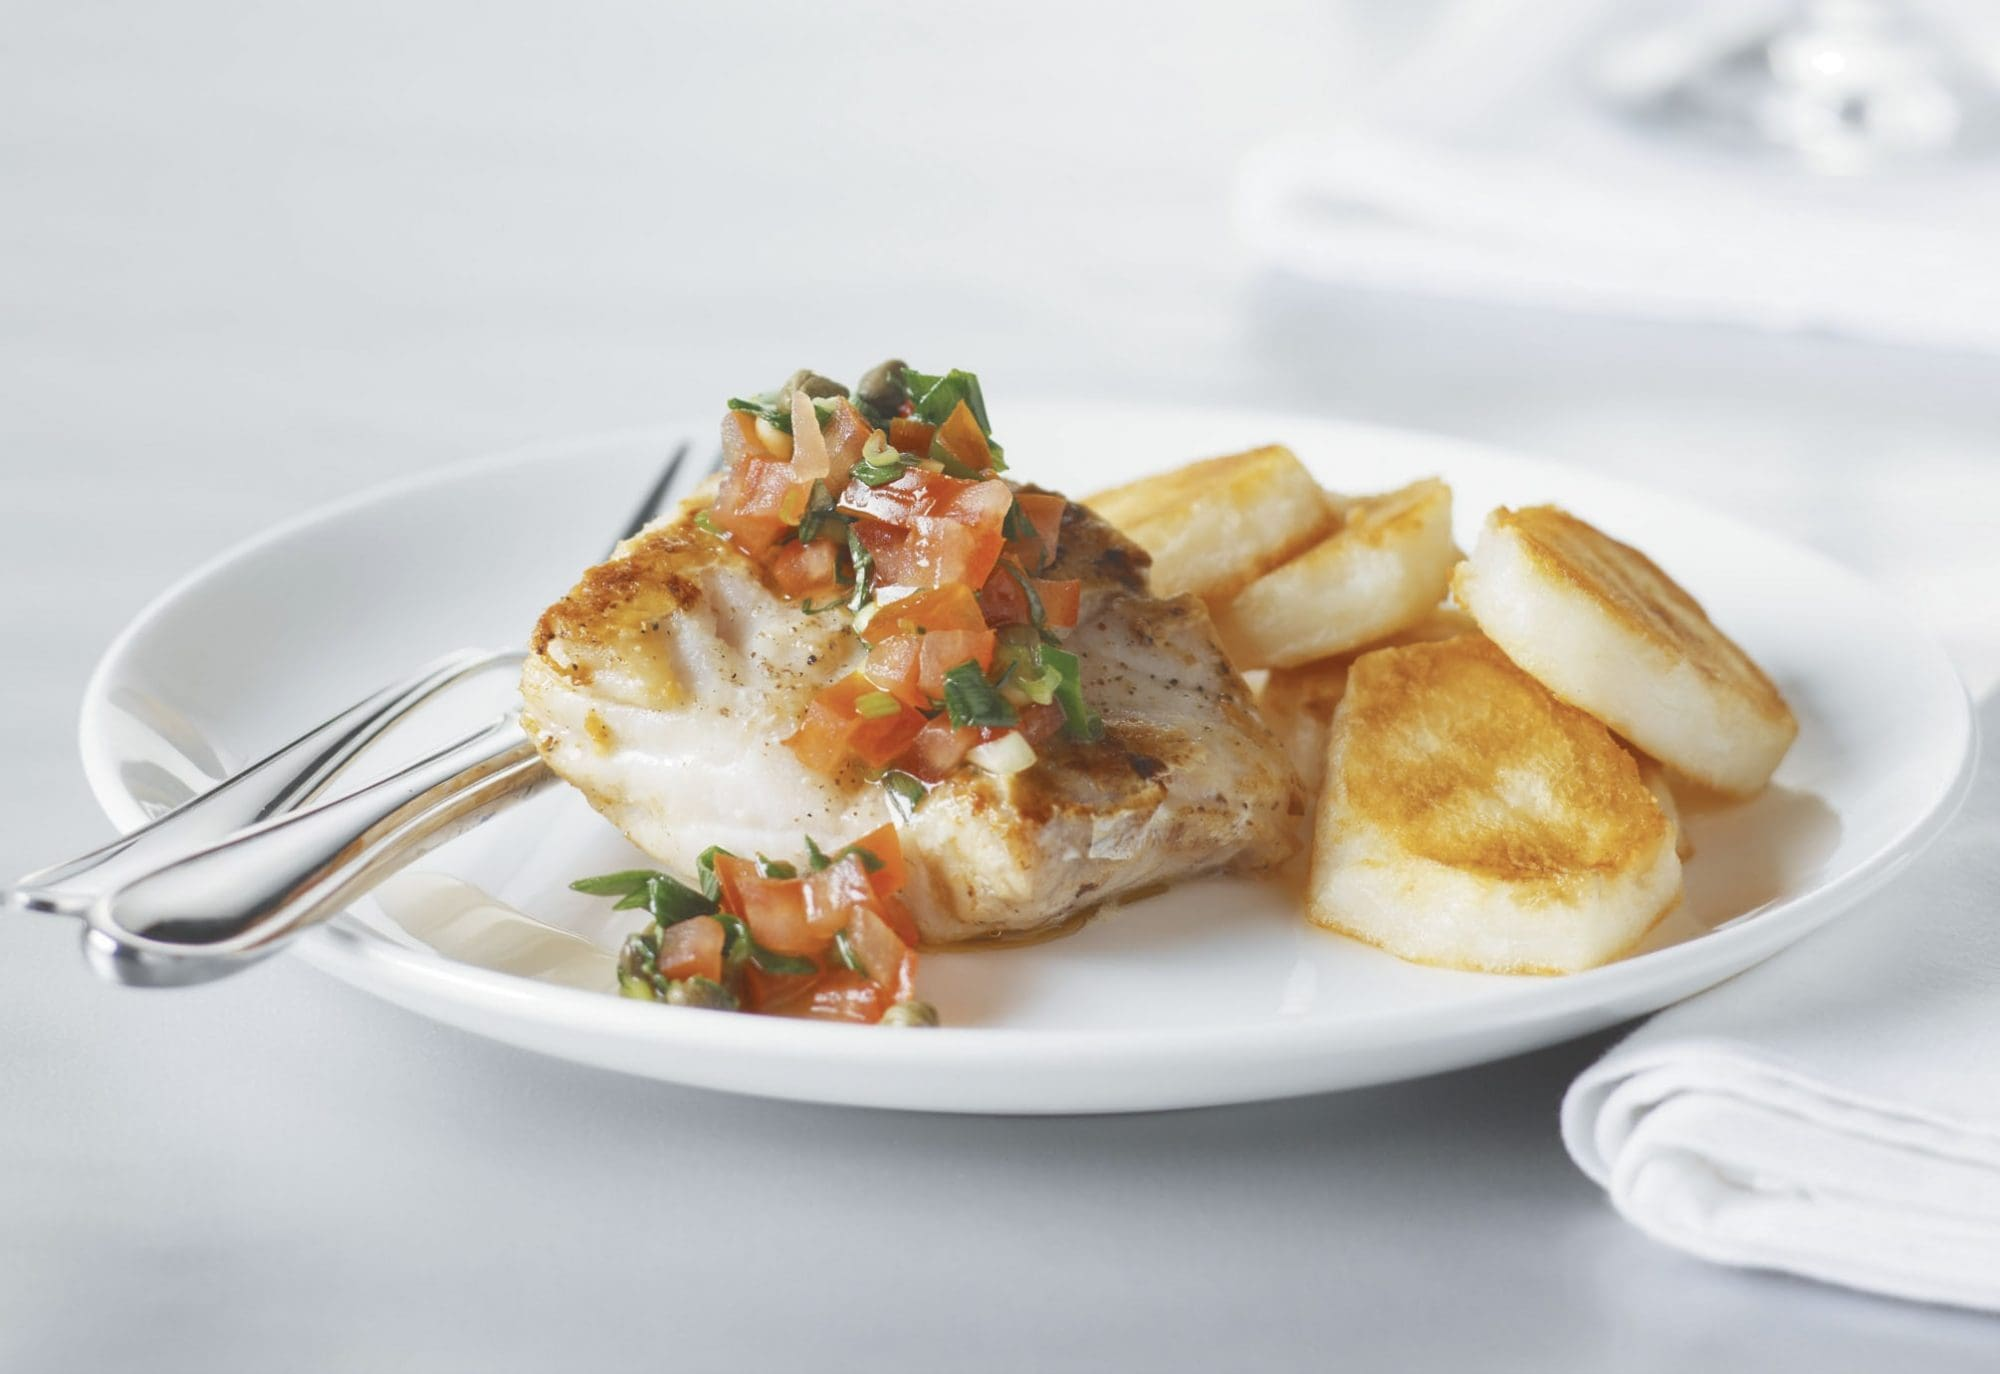 Barbecued fish with crisp potatoes